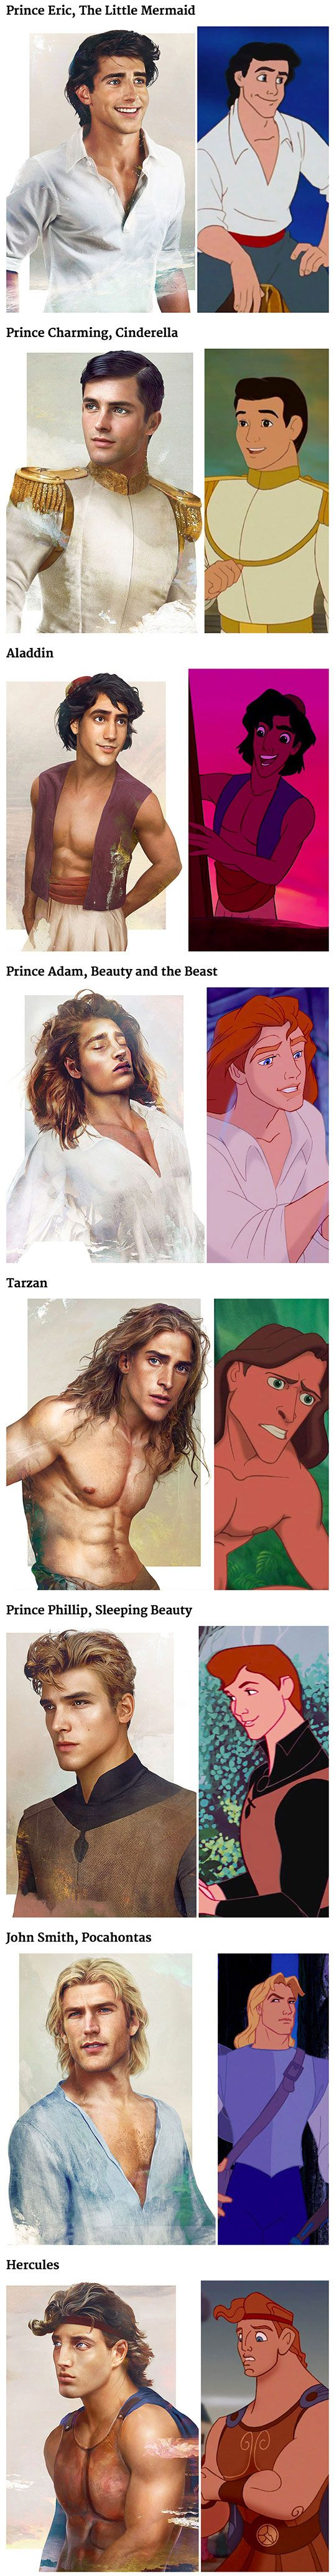 If you've ever wondered what Disney's princes might have looked like in real life, Jirka Väätäinen, a Finnish artist and designer in Melbourne, has answered that question definitively with his series